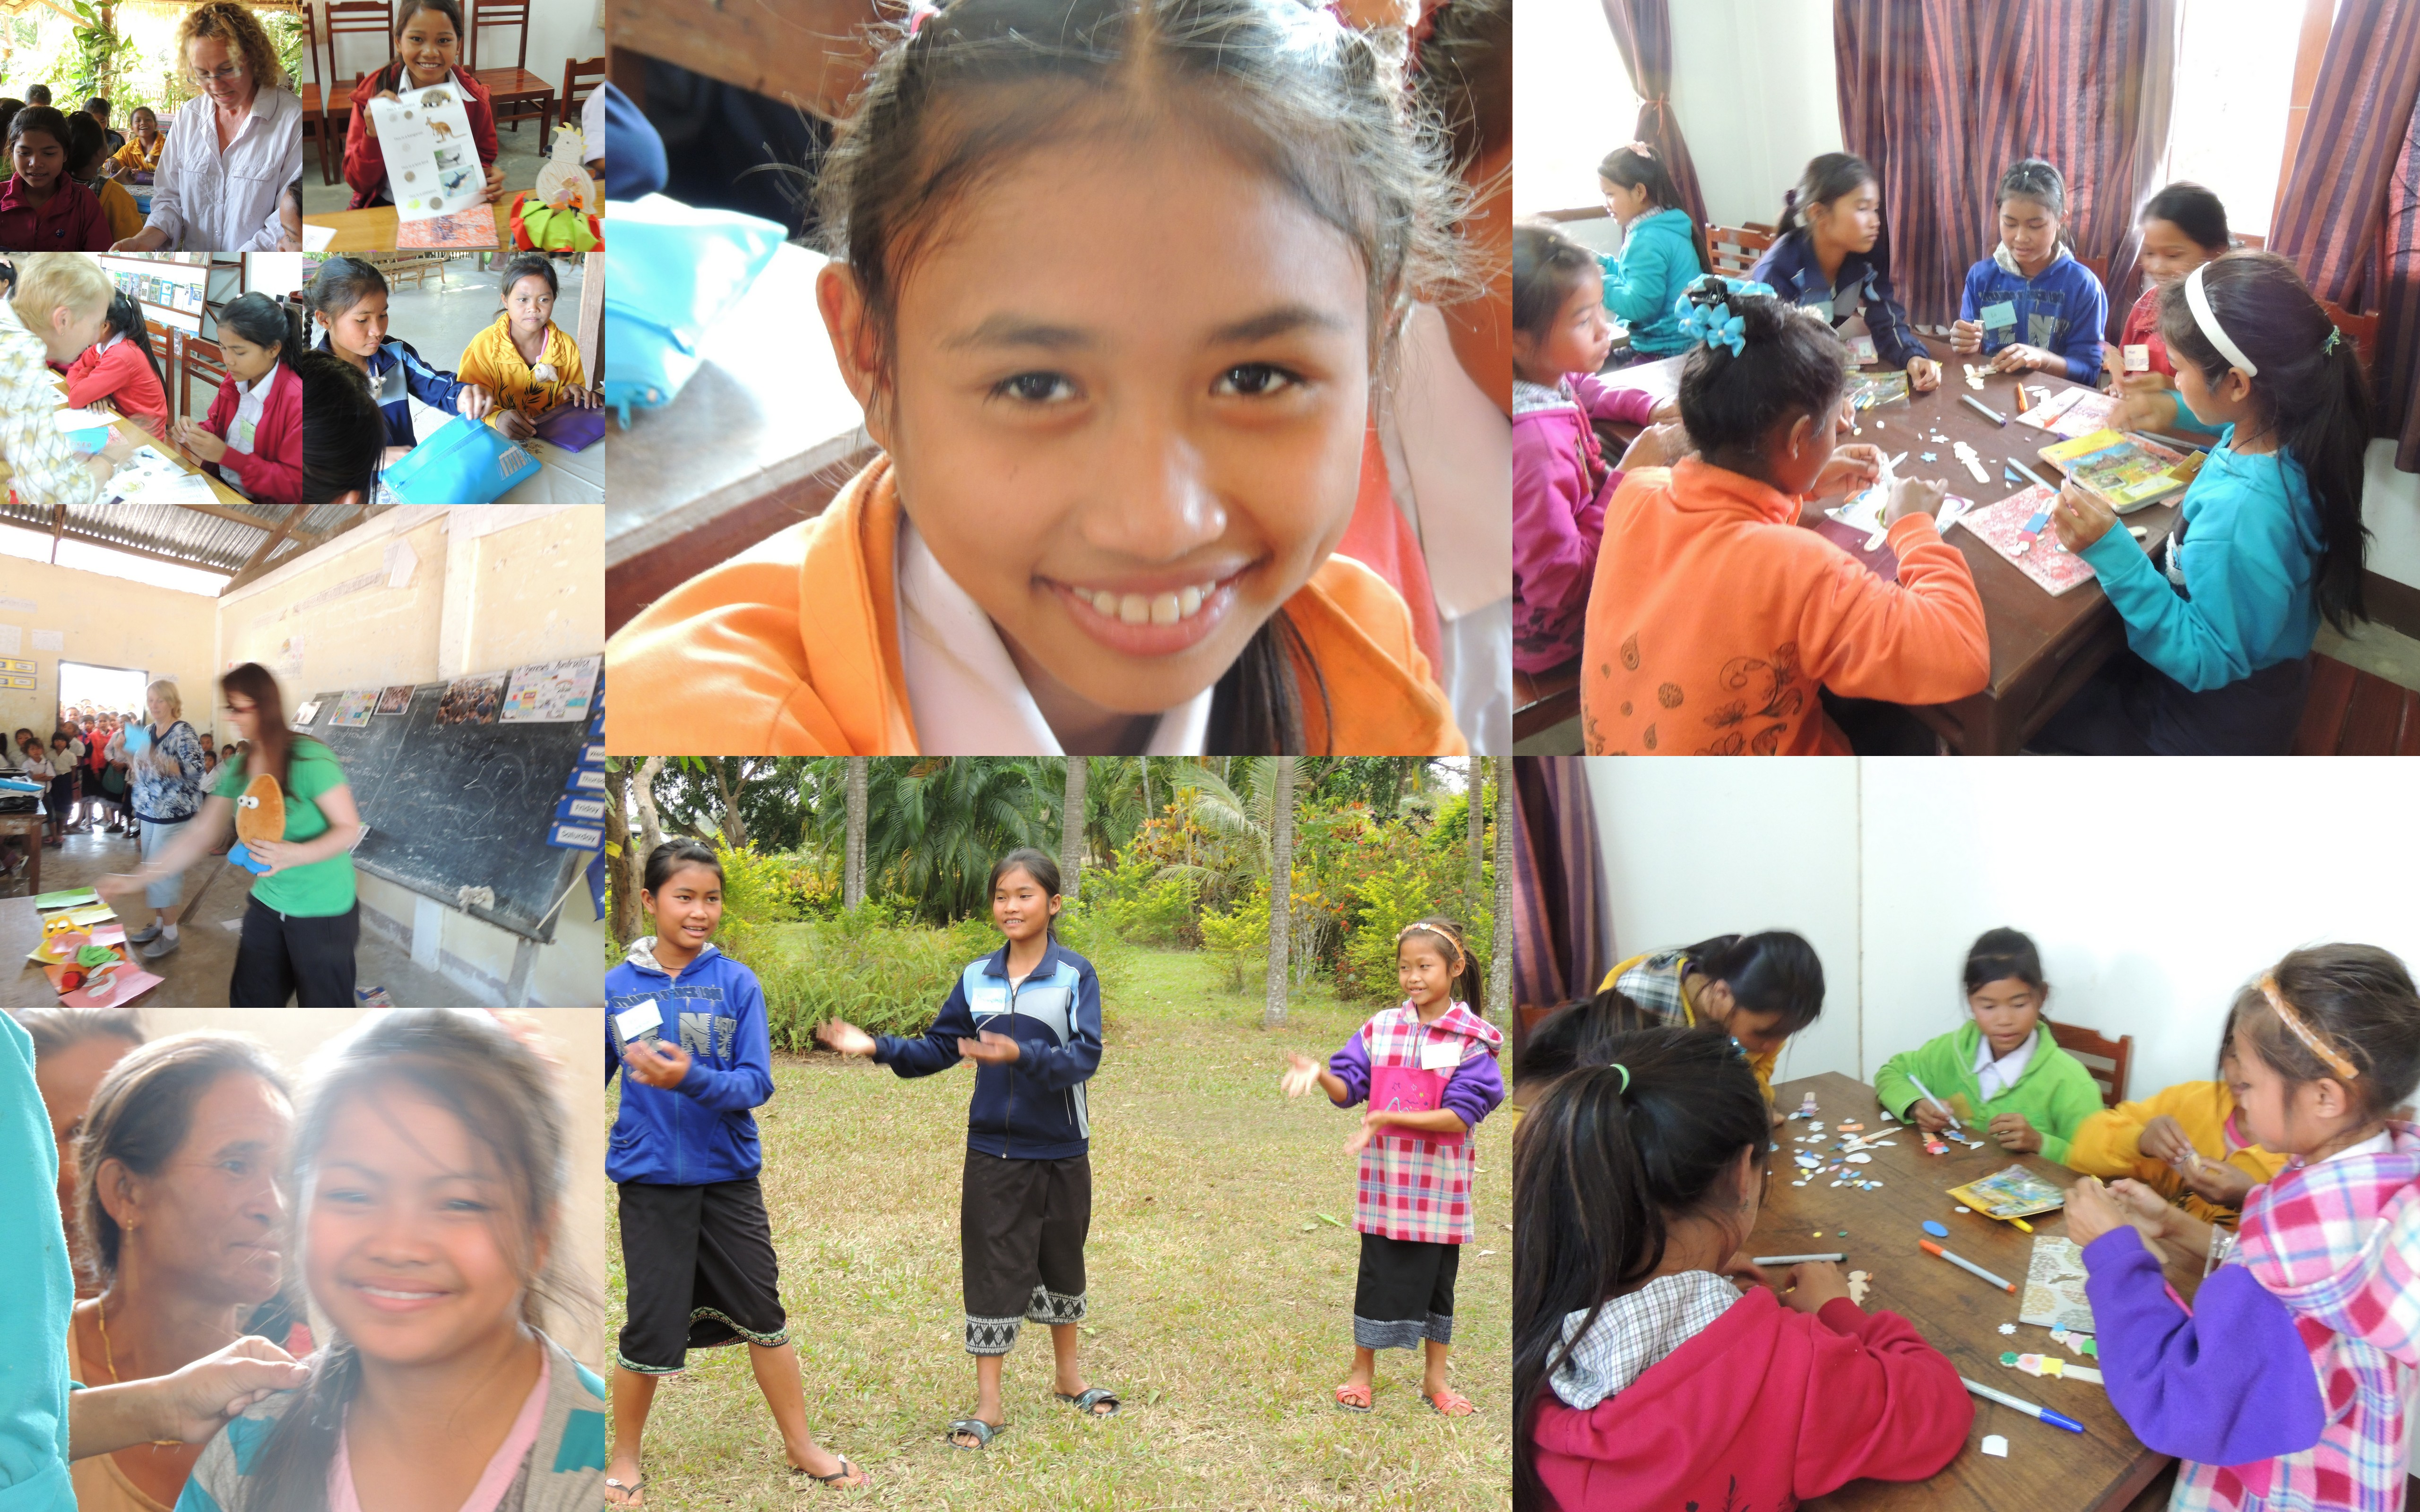 In February 2013 a group of Australian teachers travelled to Laos to run a creative arts workshop witht he Lotus girls.